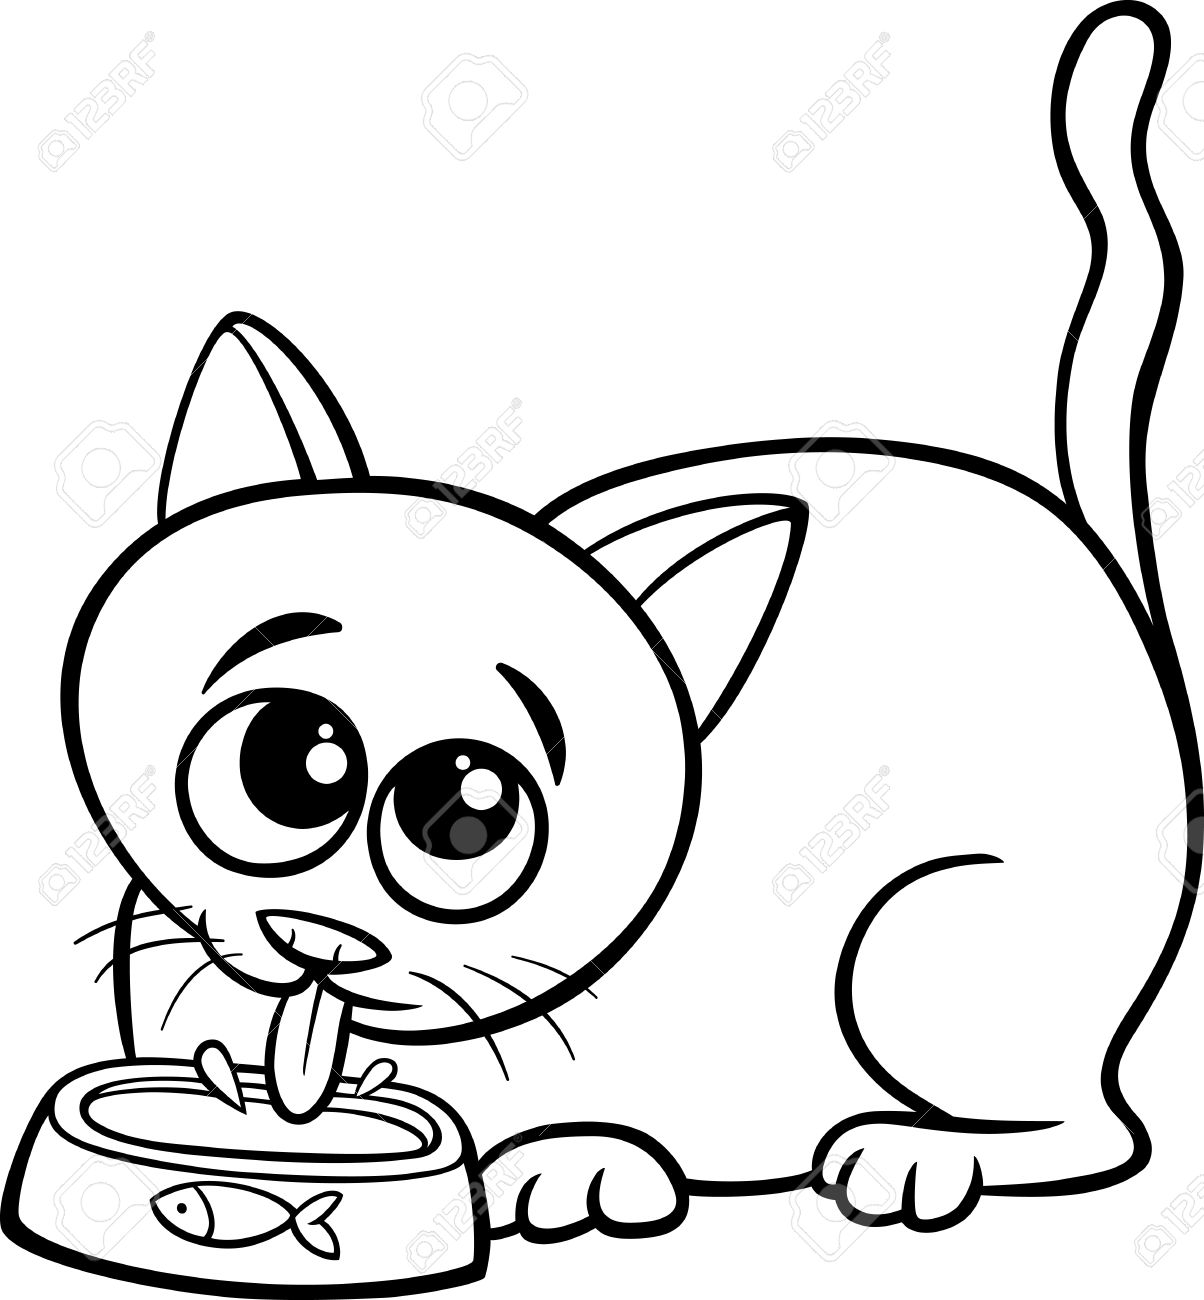 Black and White Cartoon Illustration of Cute Cat Drinking Milk...